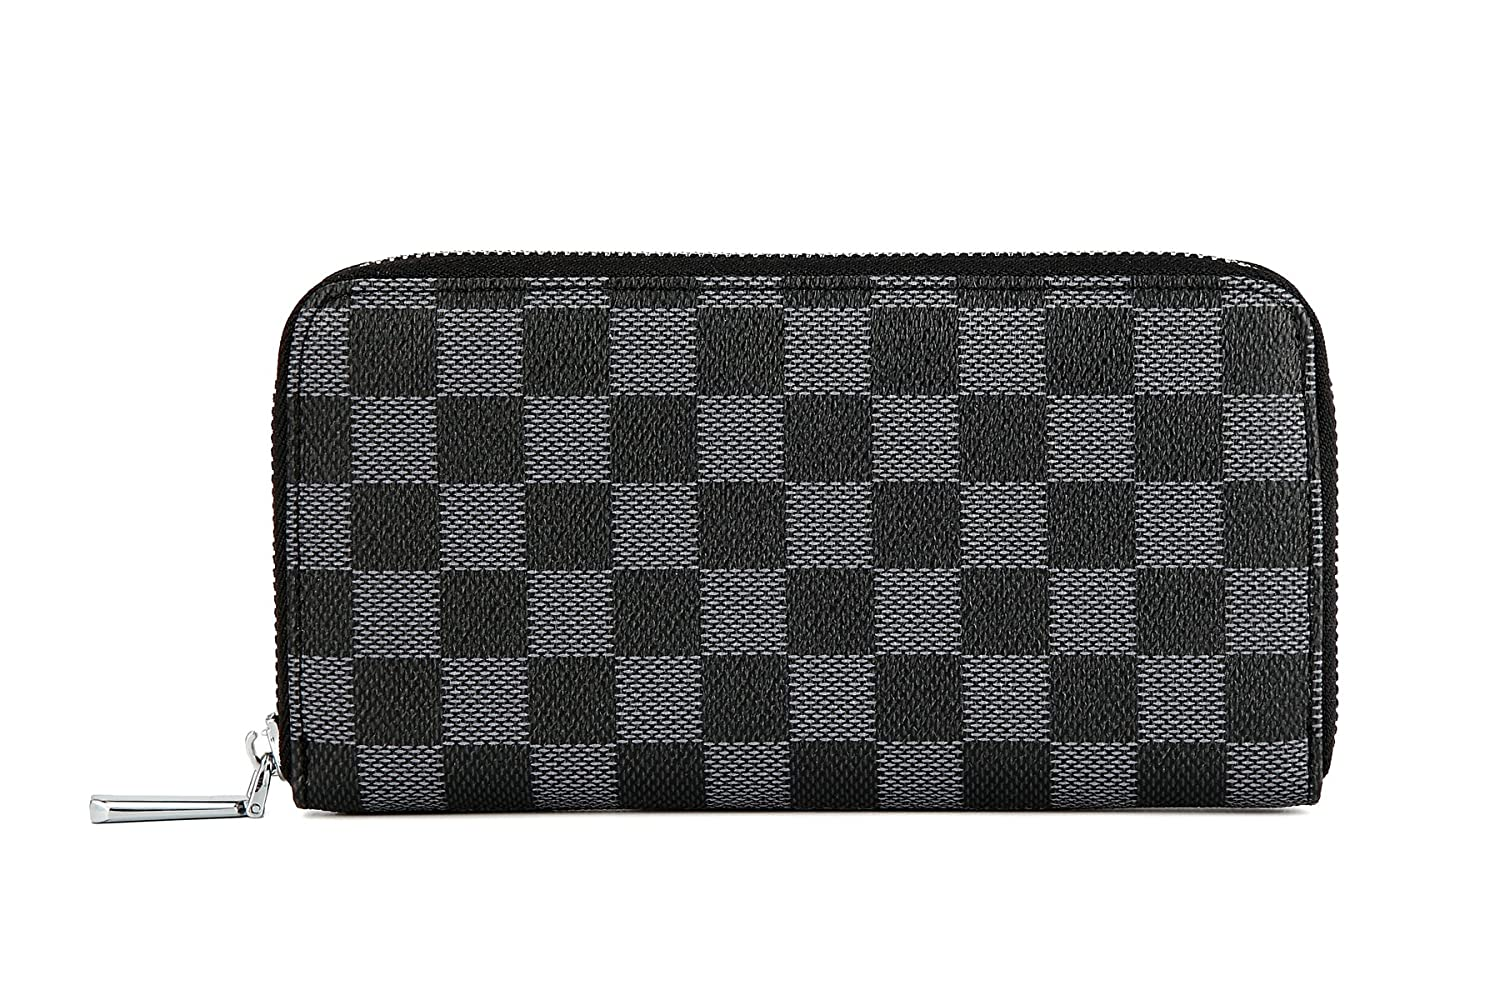 400e276850f Daisy Rose Women's Checkered Zip Around Wallet and Phone Clutch - RFID  Blocking with Card Holder Organizer -PU Vegan Leather